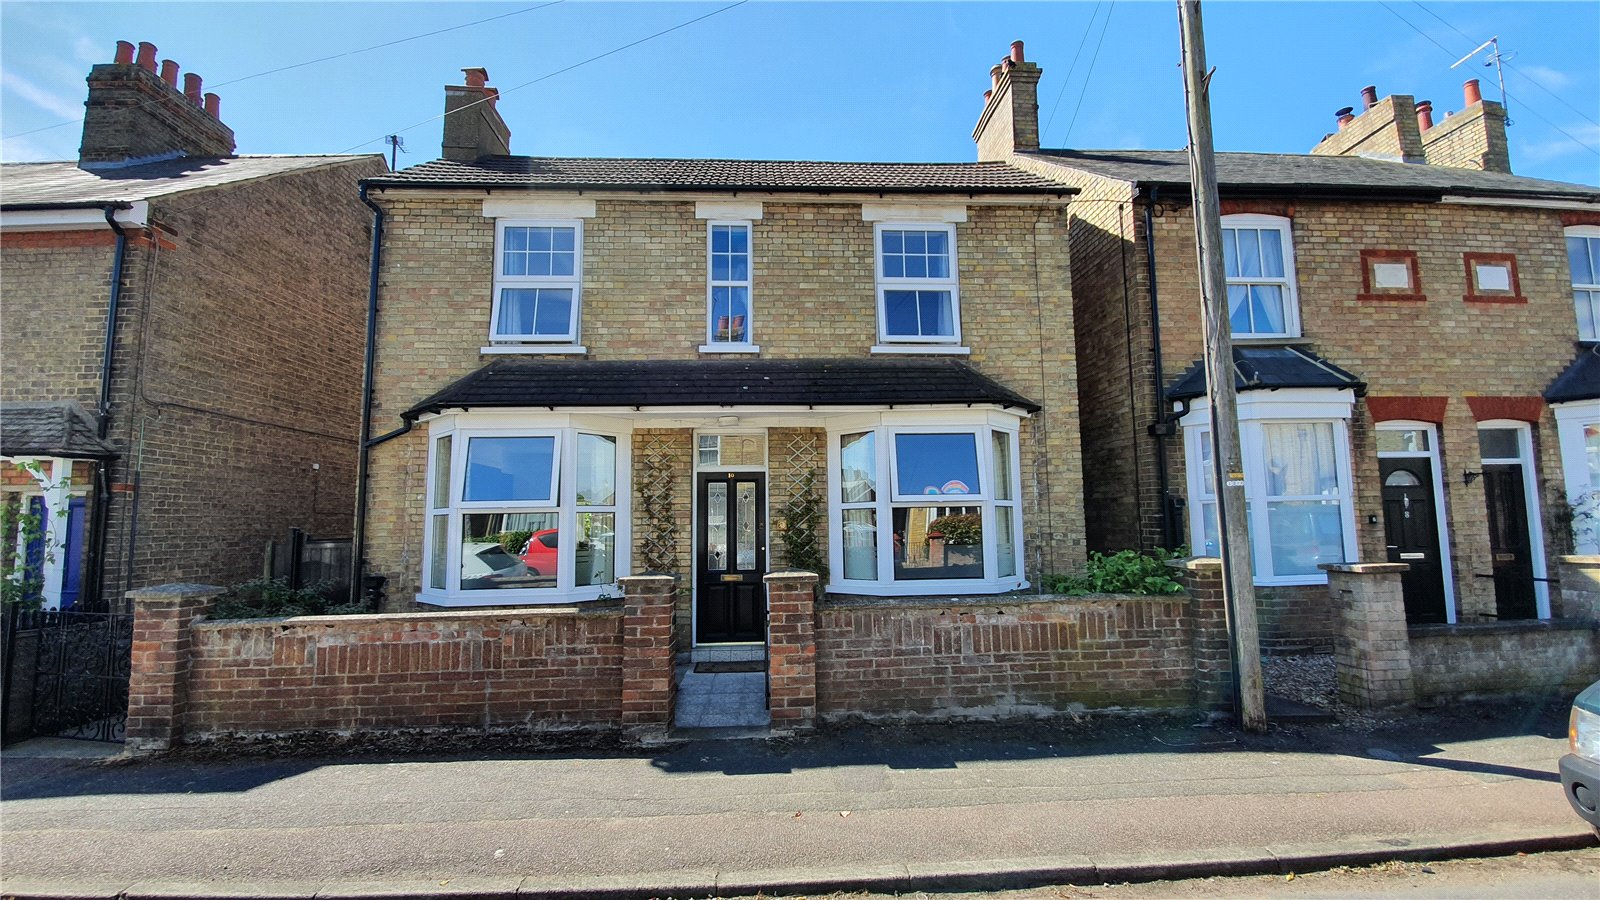 3 bed house for sale in Shaftesbury Avenue, St. Neots 0